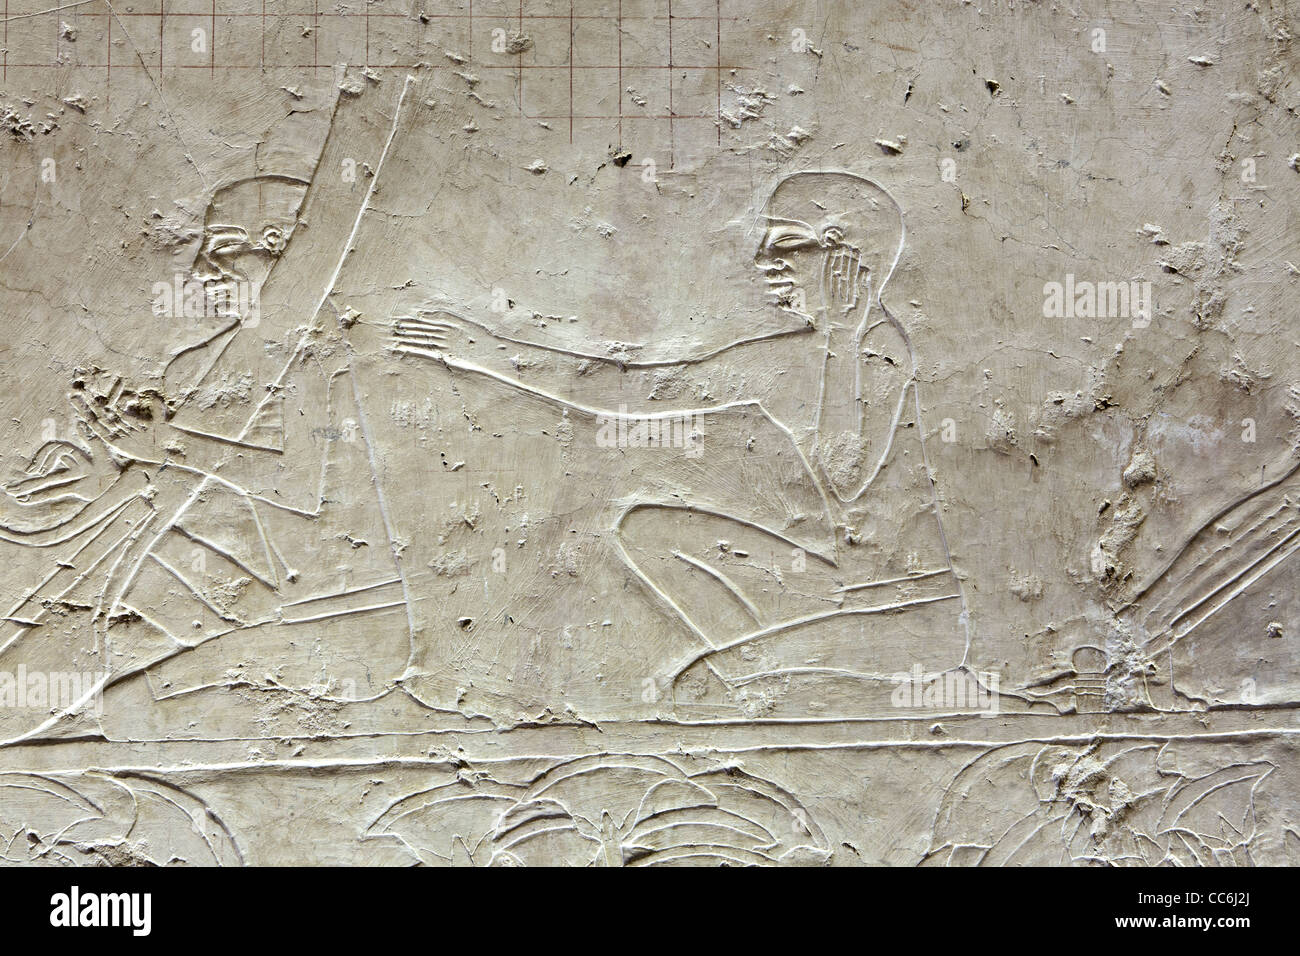 Reliefs in the Middle Kingdom tomb of Ukh Hotep Son of Senbi at Meir , North West of Asyut in Middle Egypt - Stock Image